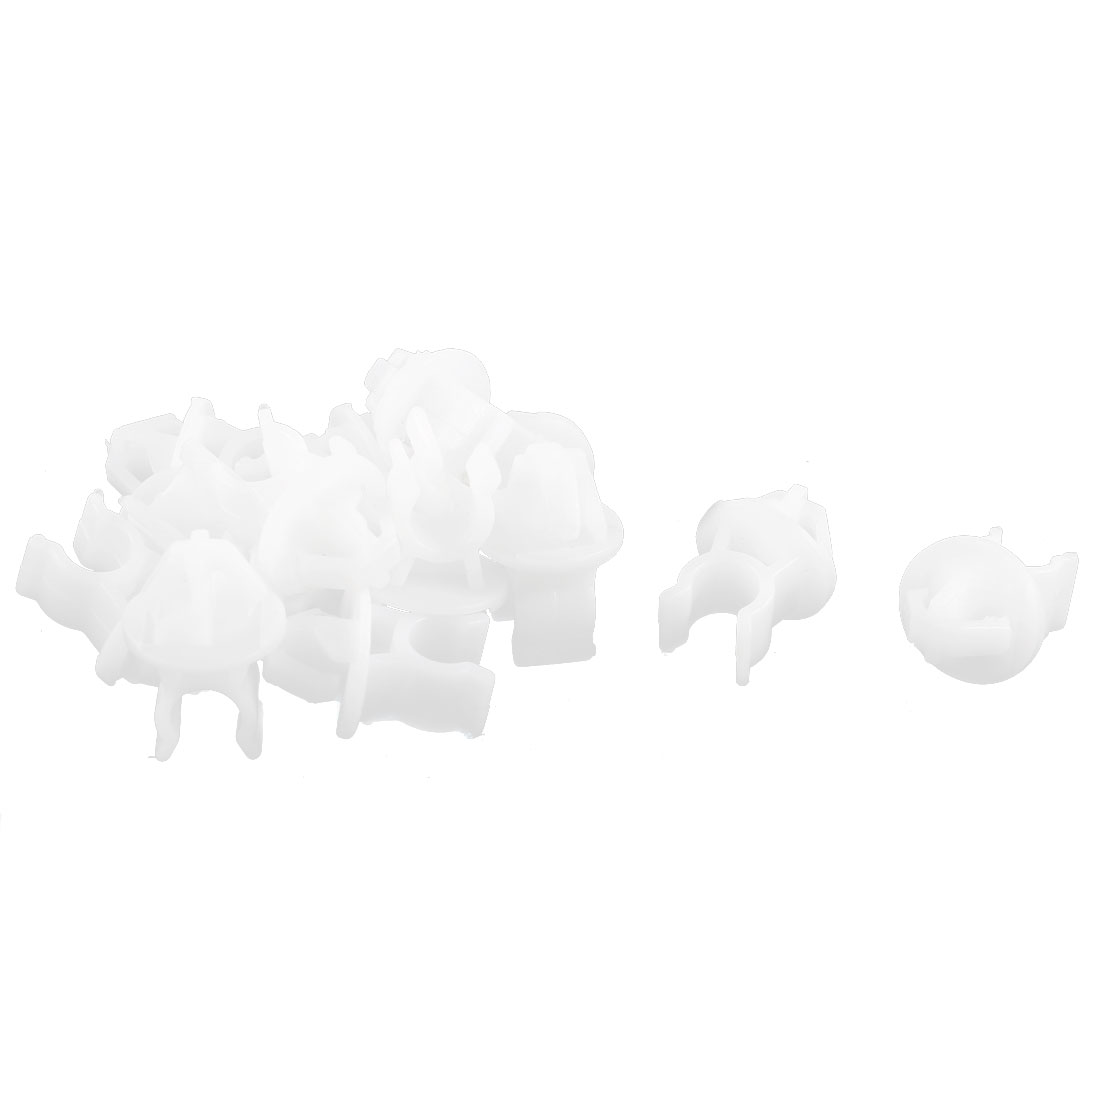 15pcs White Plastic Car Hood Prop Rod Clip Fasteners 14mm x 11mm Hole for Honda